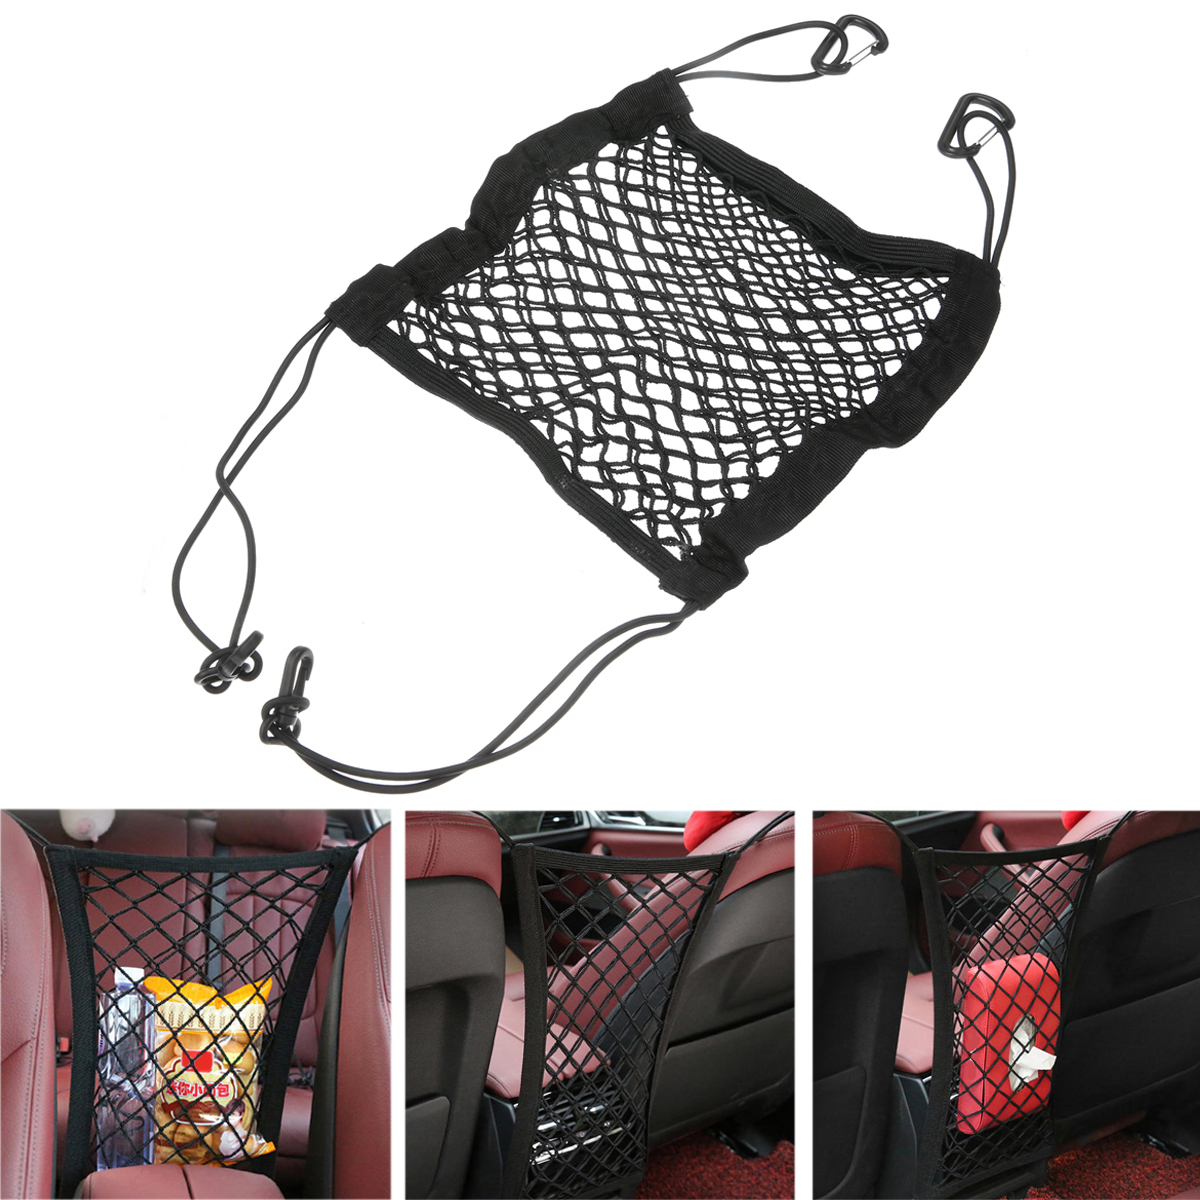 26cm 24cm Car Organizer Seat Back Storage Elastic Car Mesh Net Bag Between Bags Luggage Holder Pocket Car Styling in Stowing Tidying from Automobiles Motorcycles